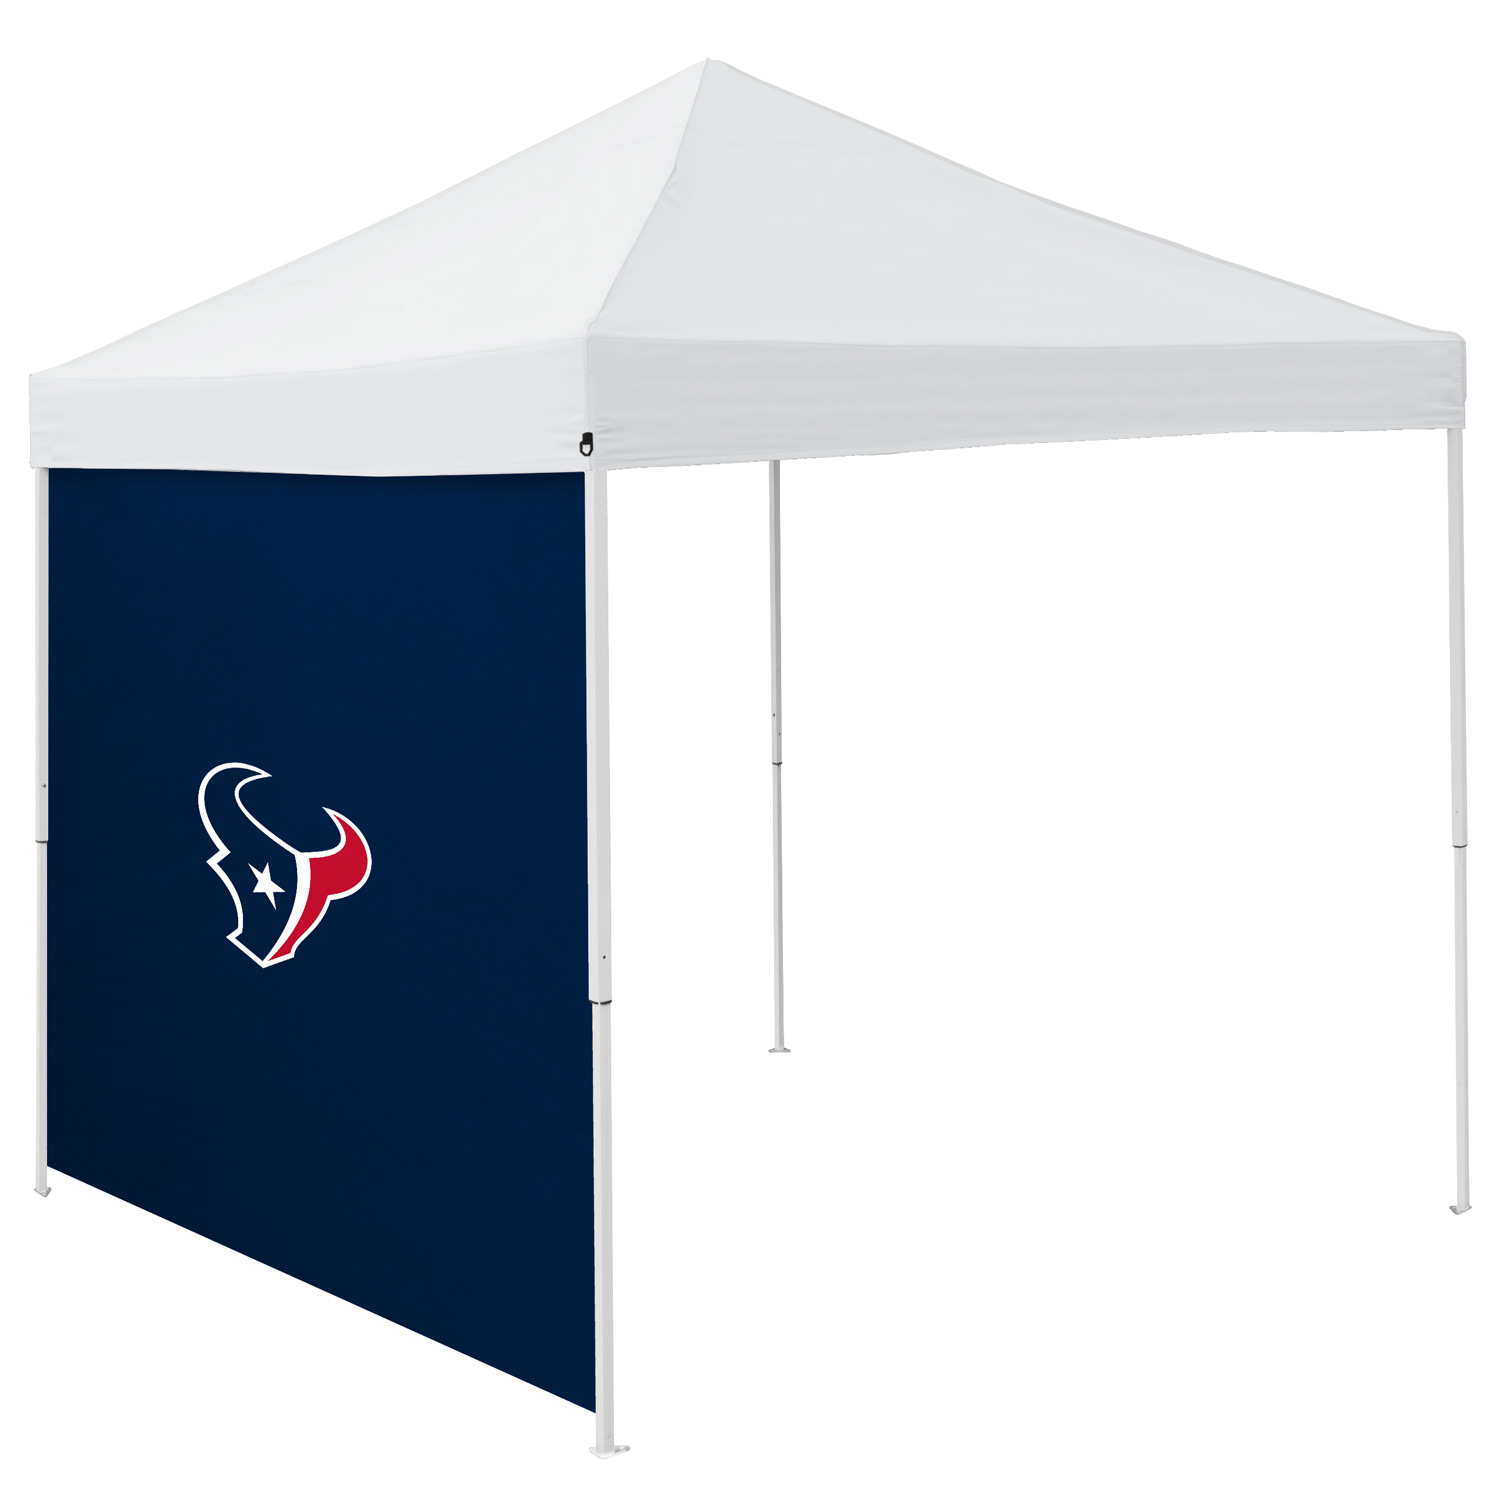 Houston Tent Side Panel w/ Texans Logo - Logo Brand  sc 1 st  Team Sports Covers & Tent Side Panel w/ Texans Logo - Logo Brand